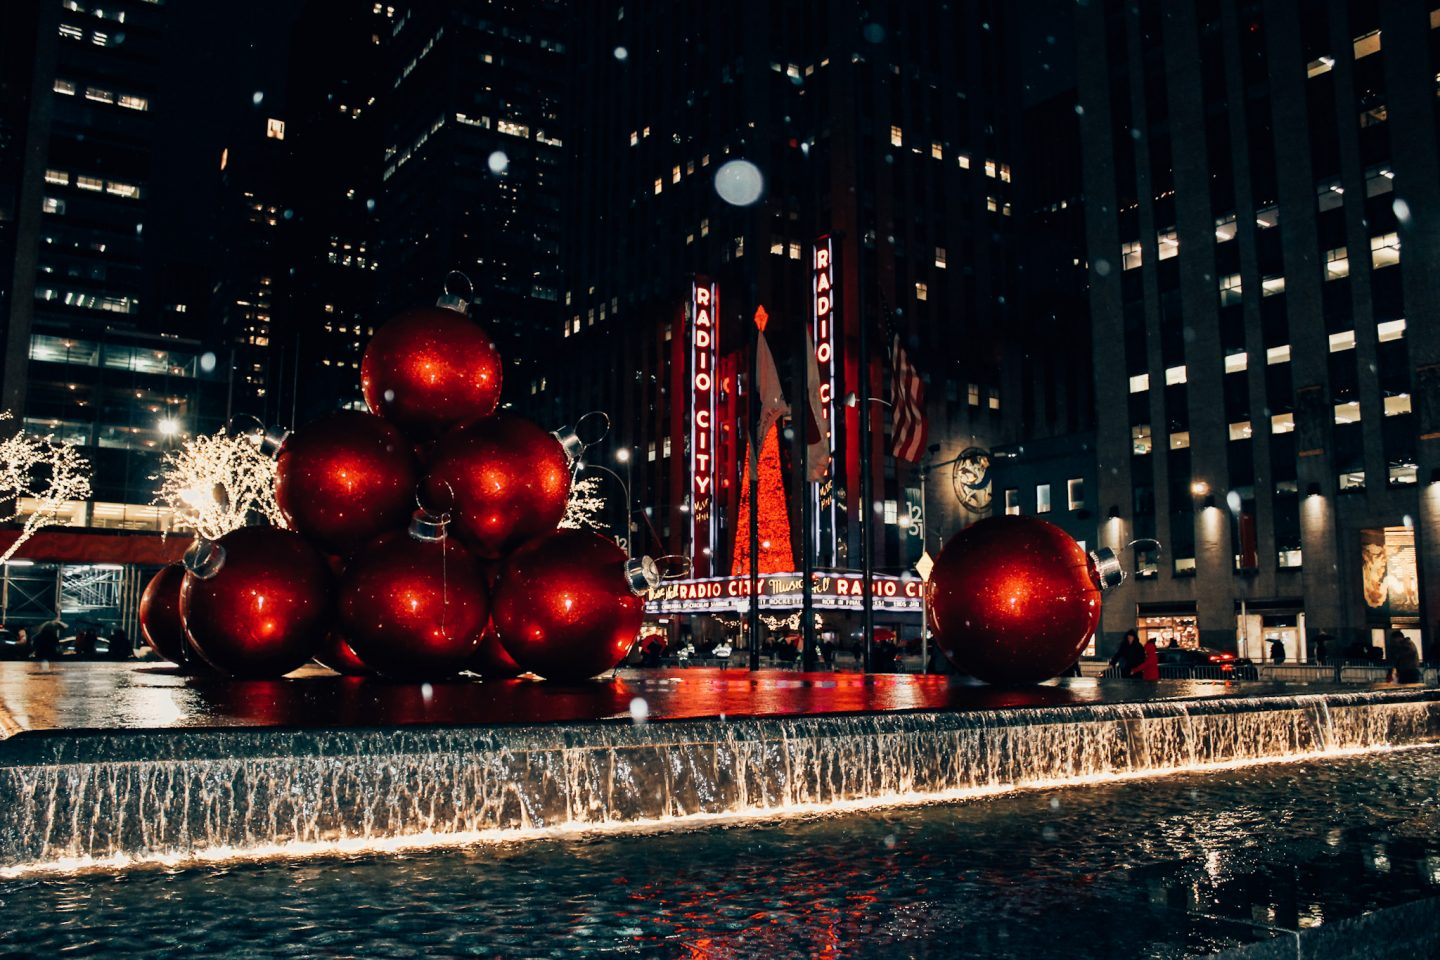 Radio City Music Hall decorated for the holidays in December!